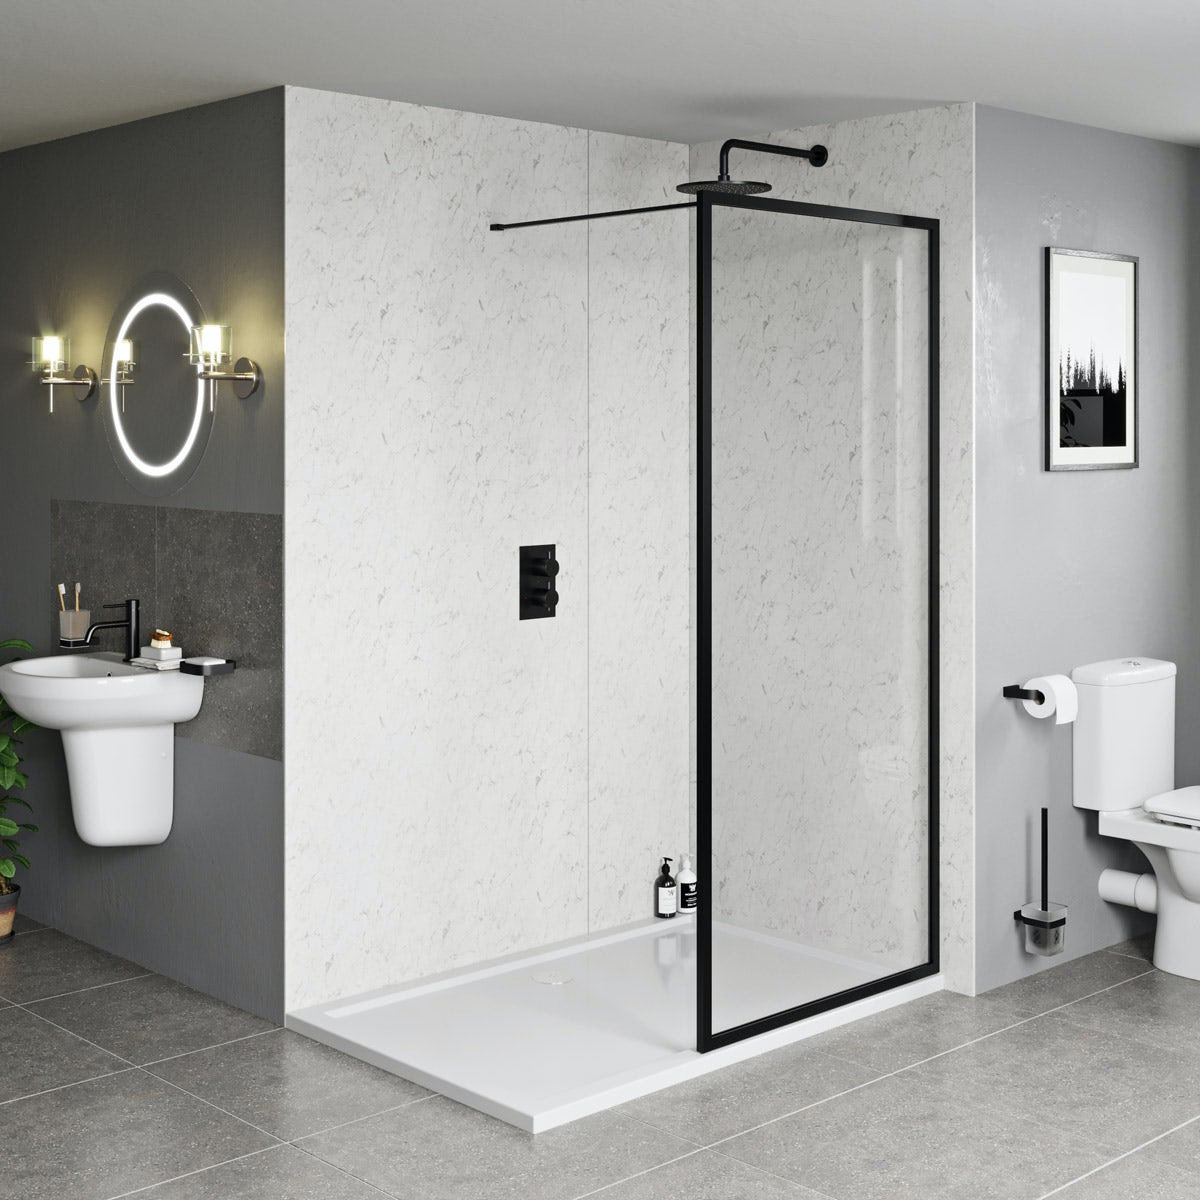 Orchard 6mm Black Framed Wet Room Glass Screen With Stone